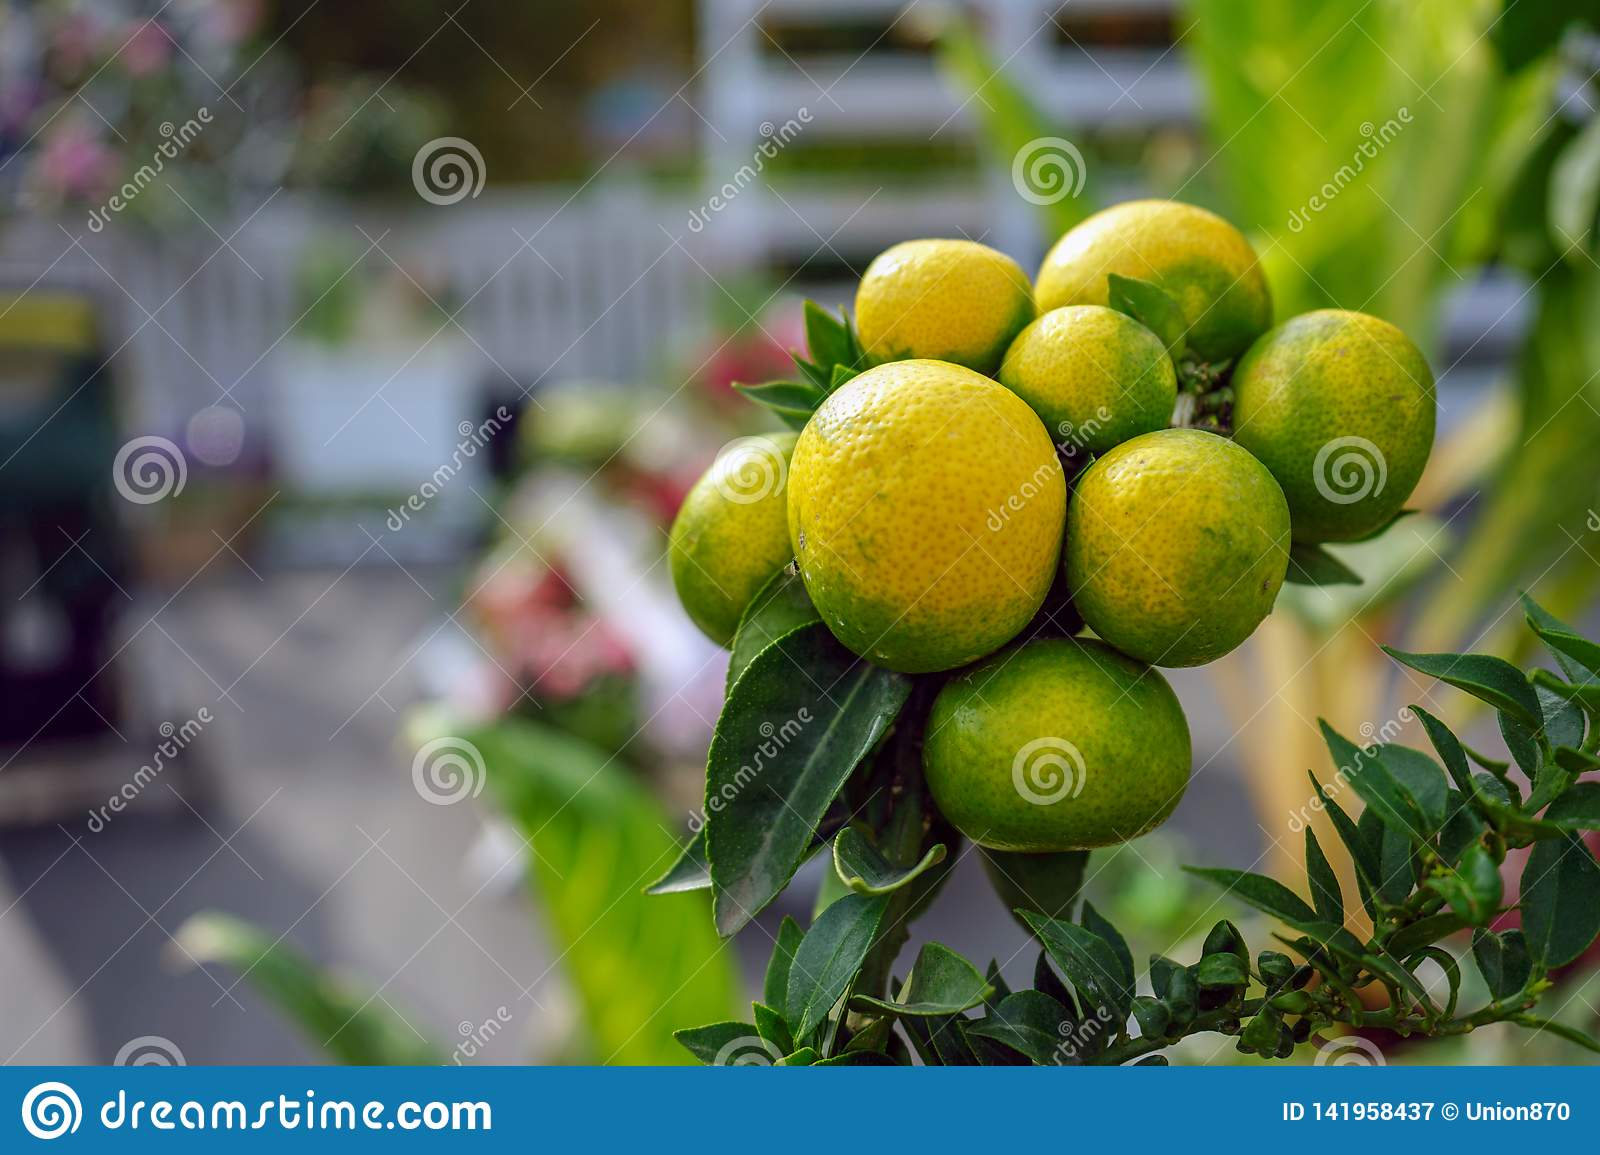 Decorative tangerines hang on a tree branch